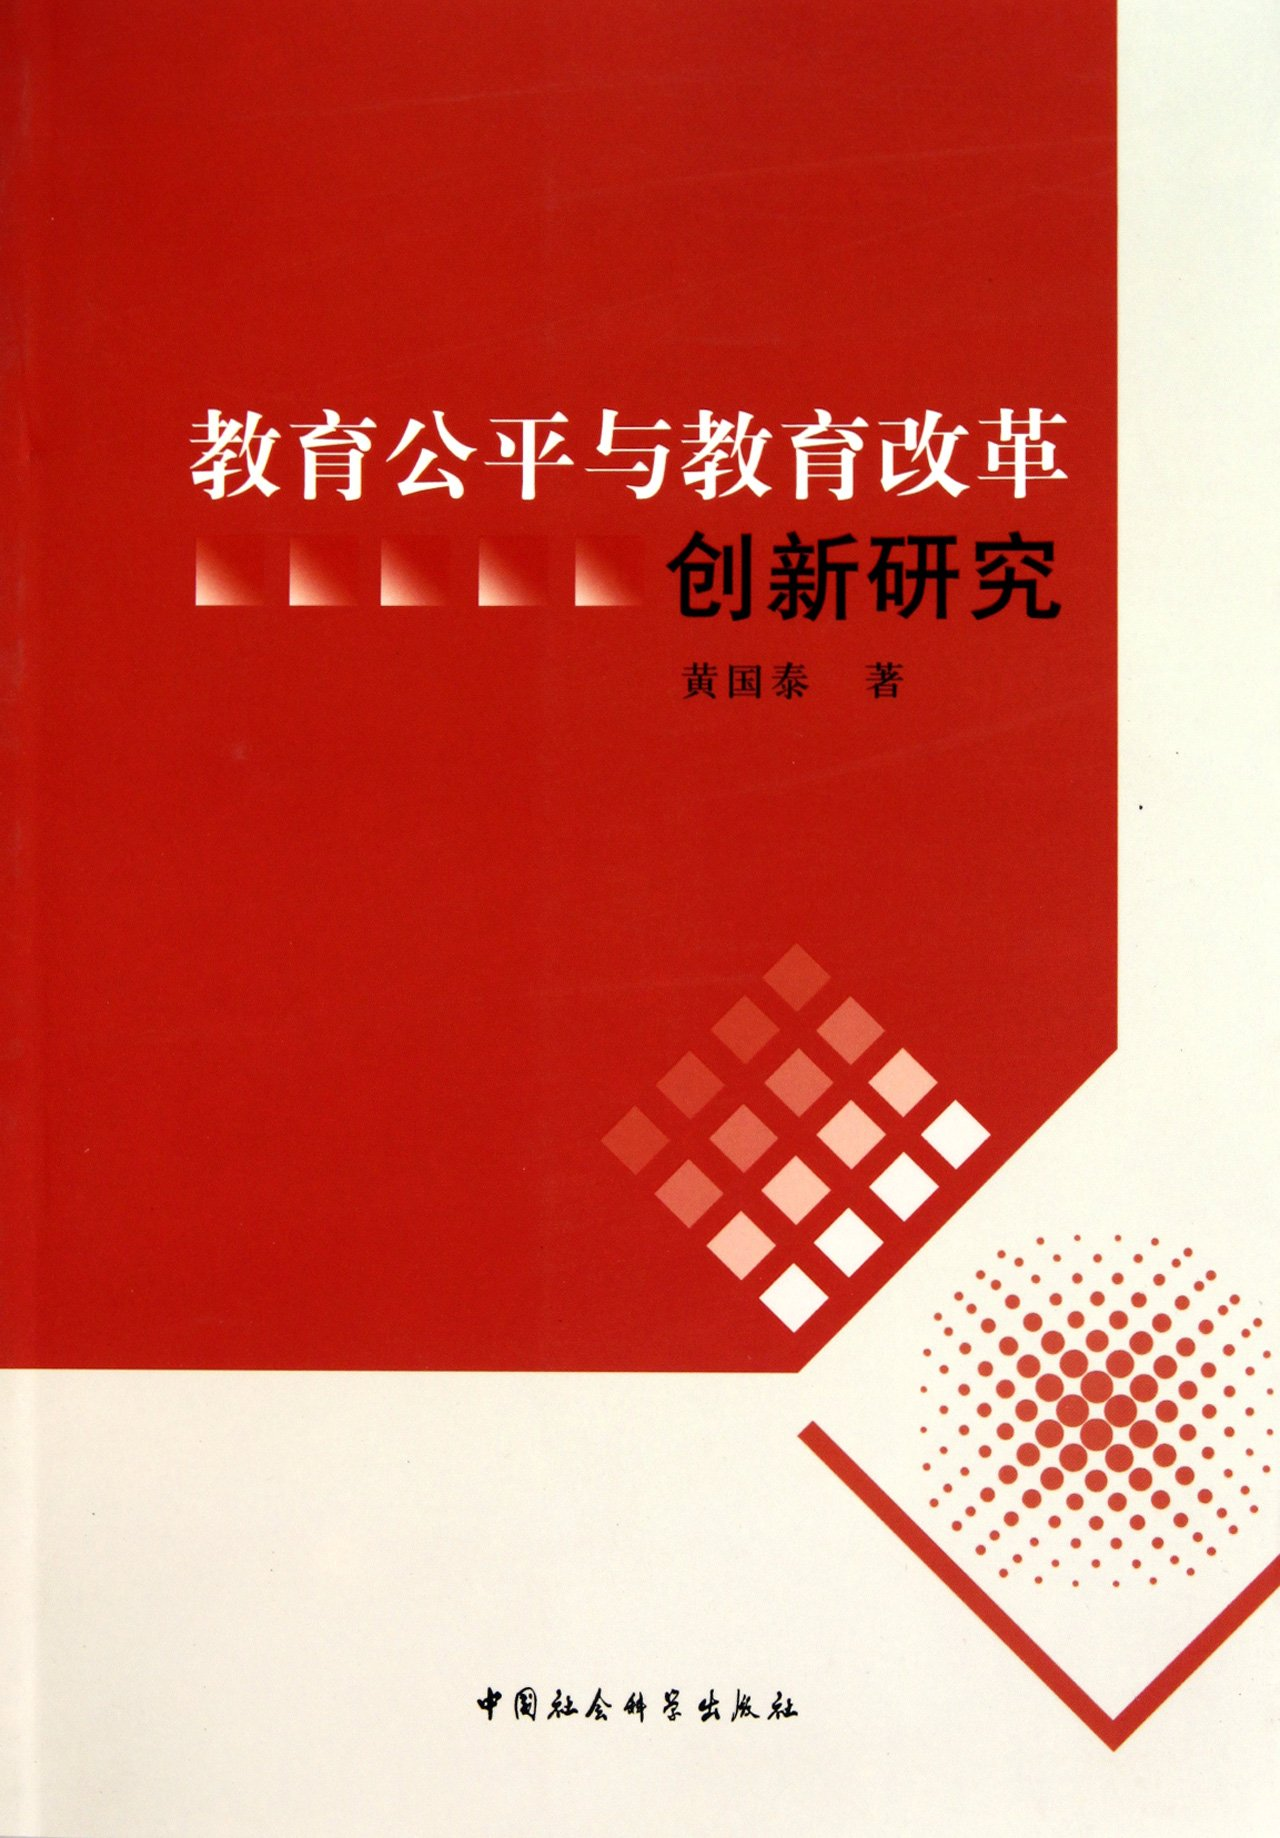 Study on education fairness and reform innovation of education management system mechanism (Chinese Edition) pdf